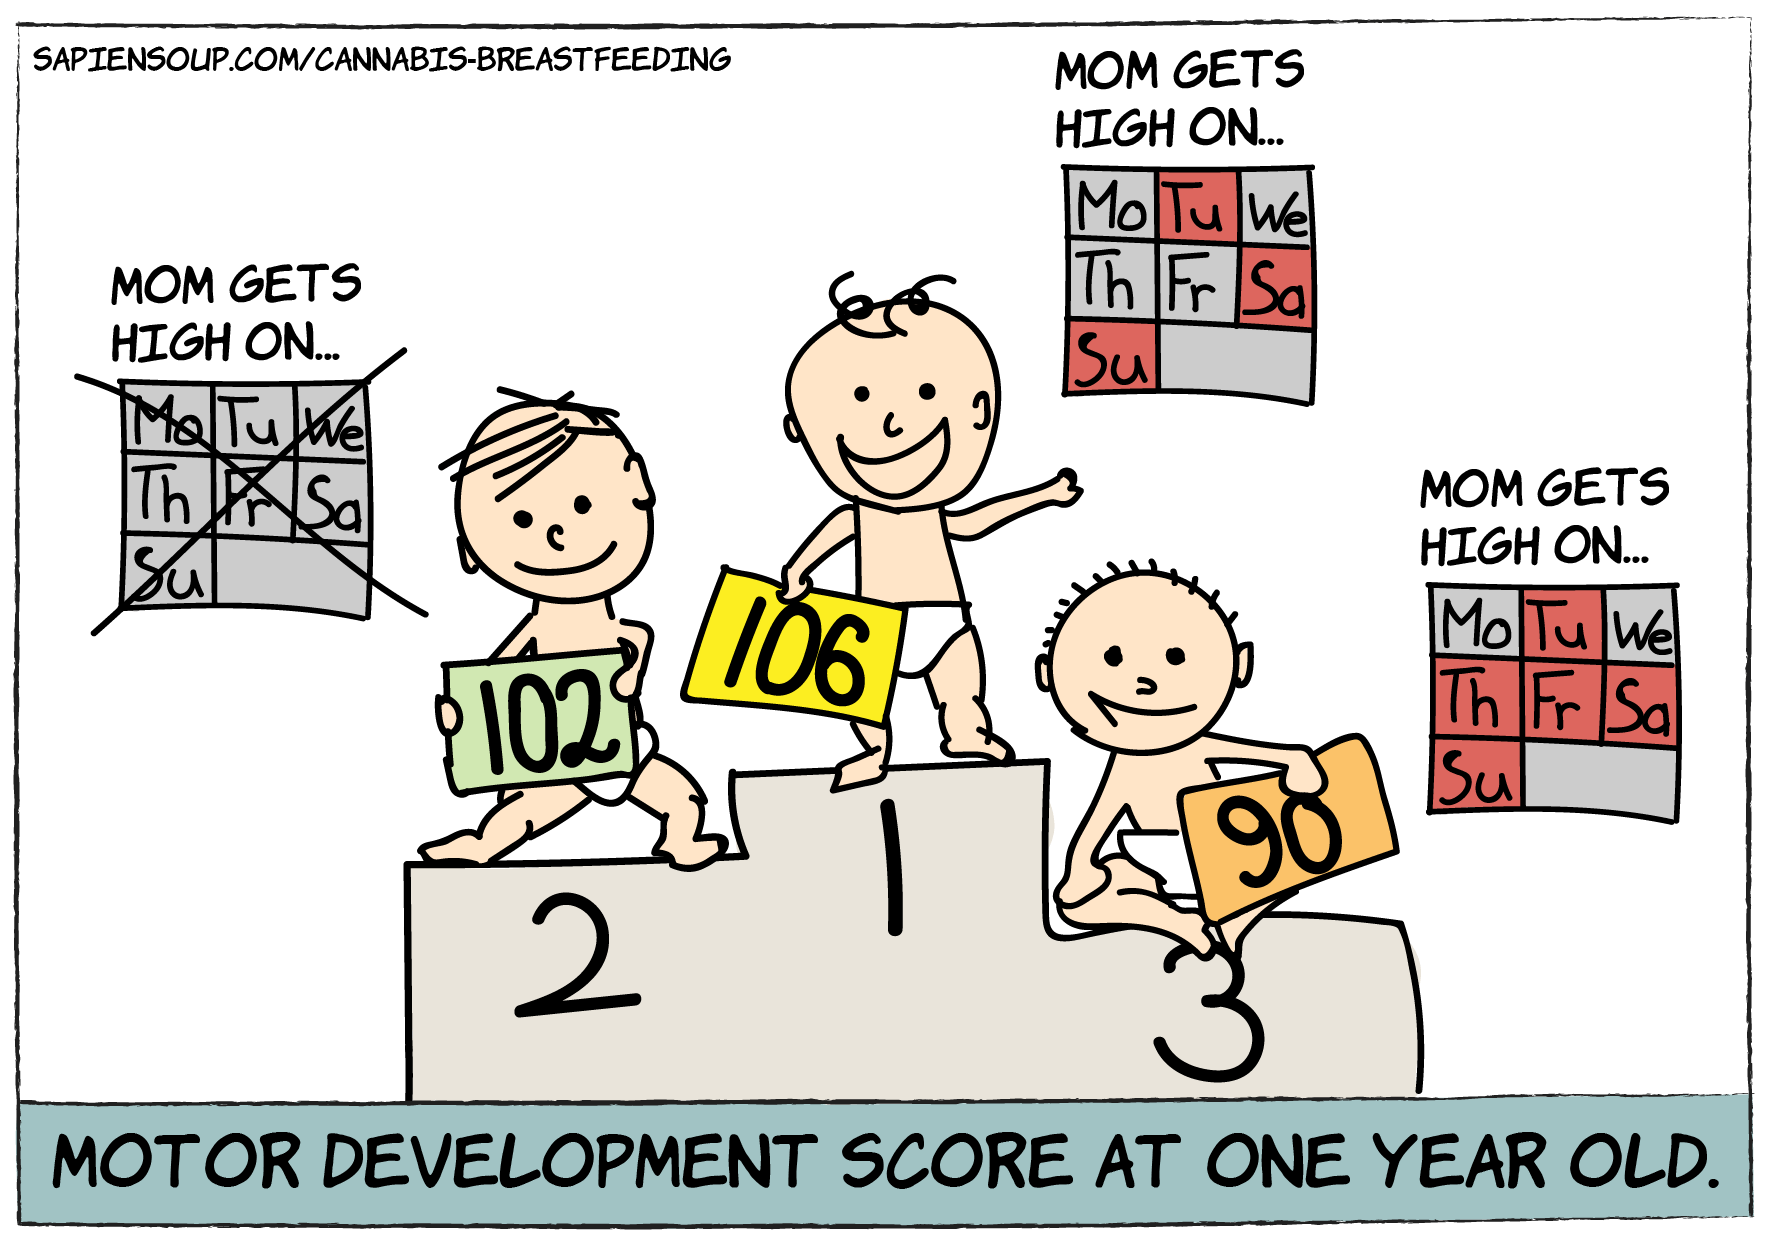 motor development scores at one year old